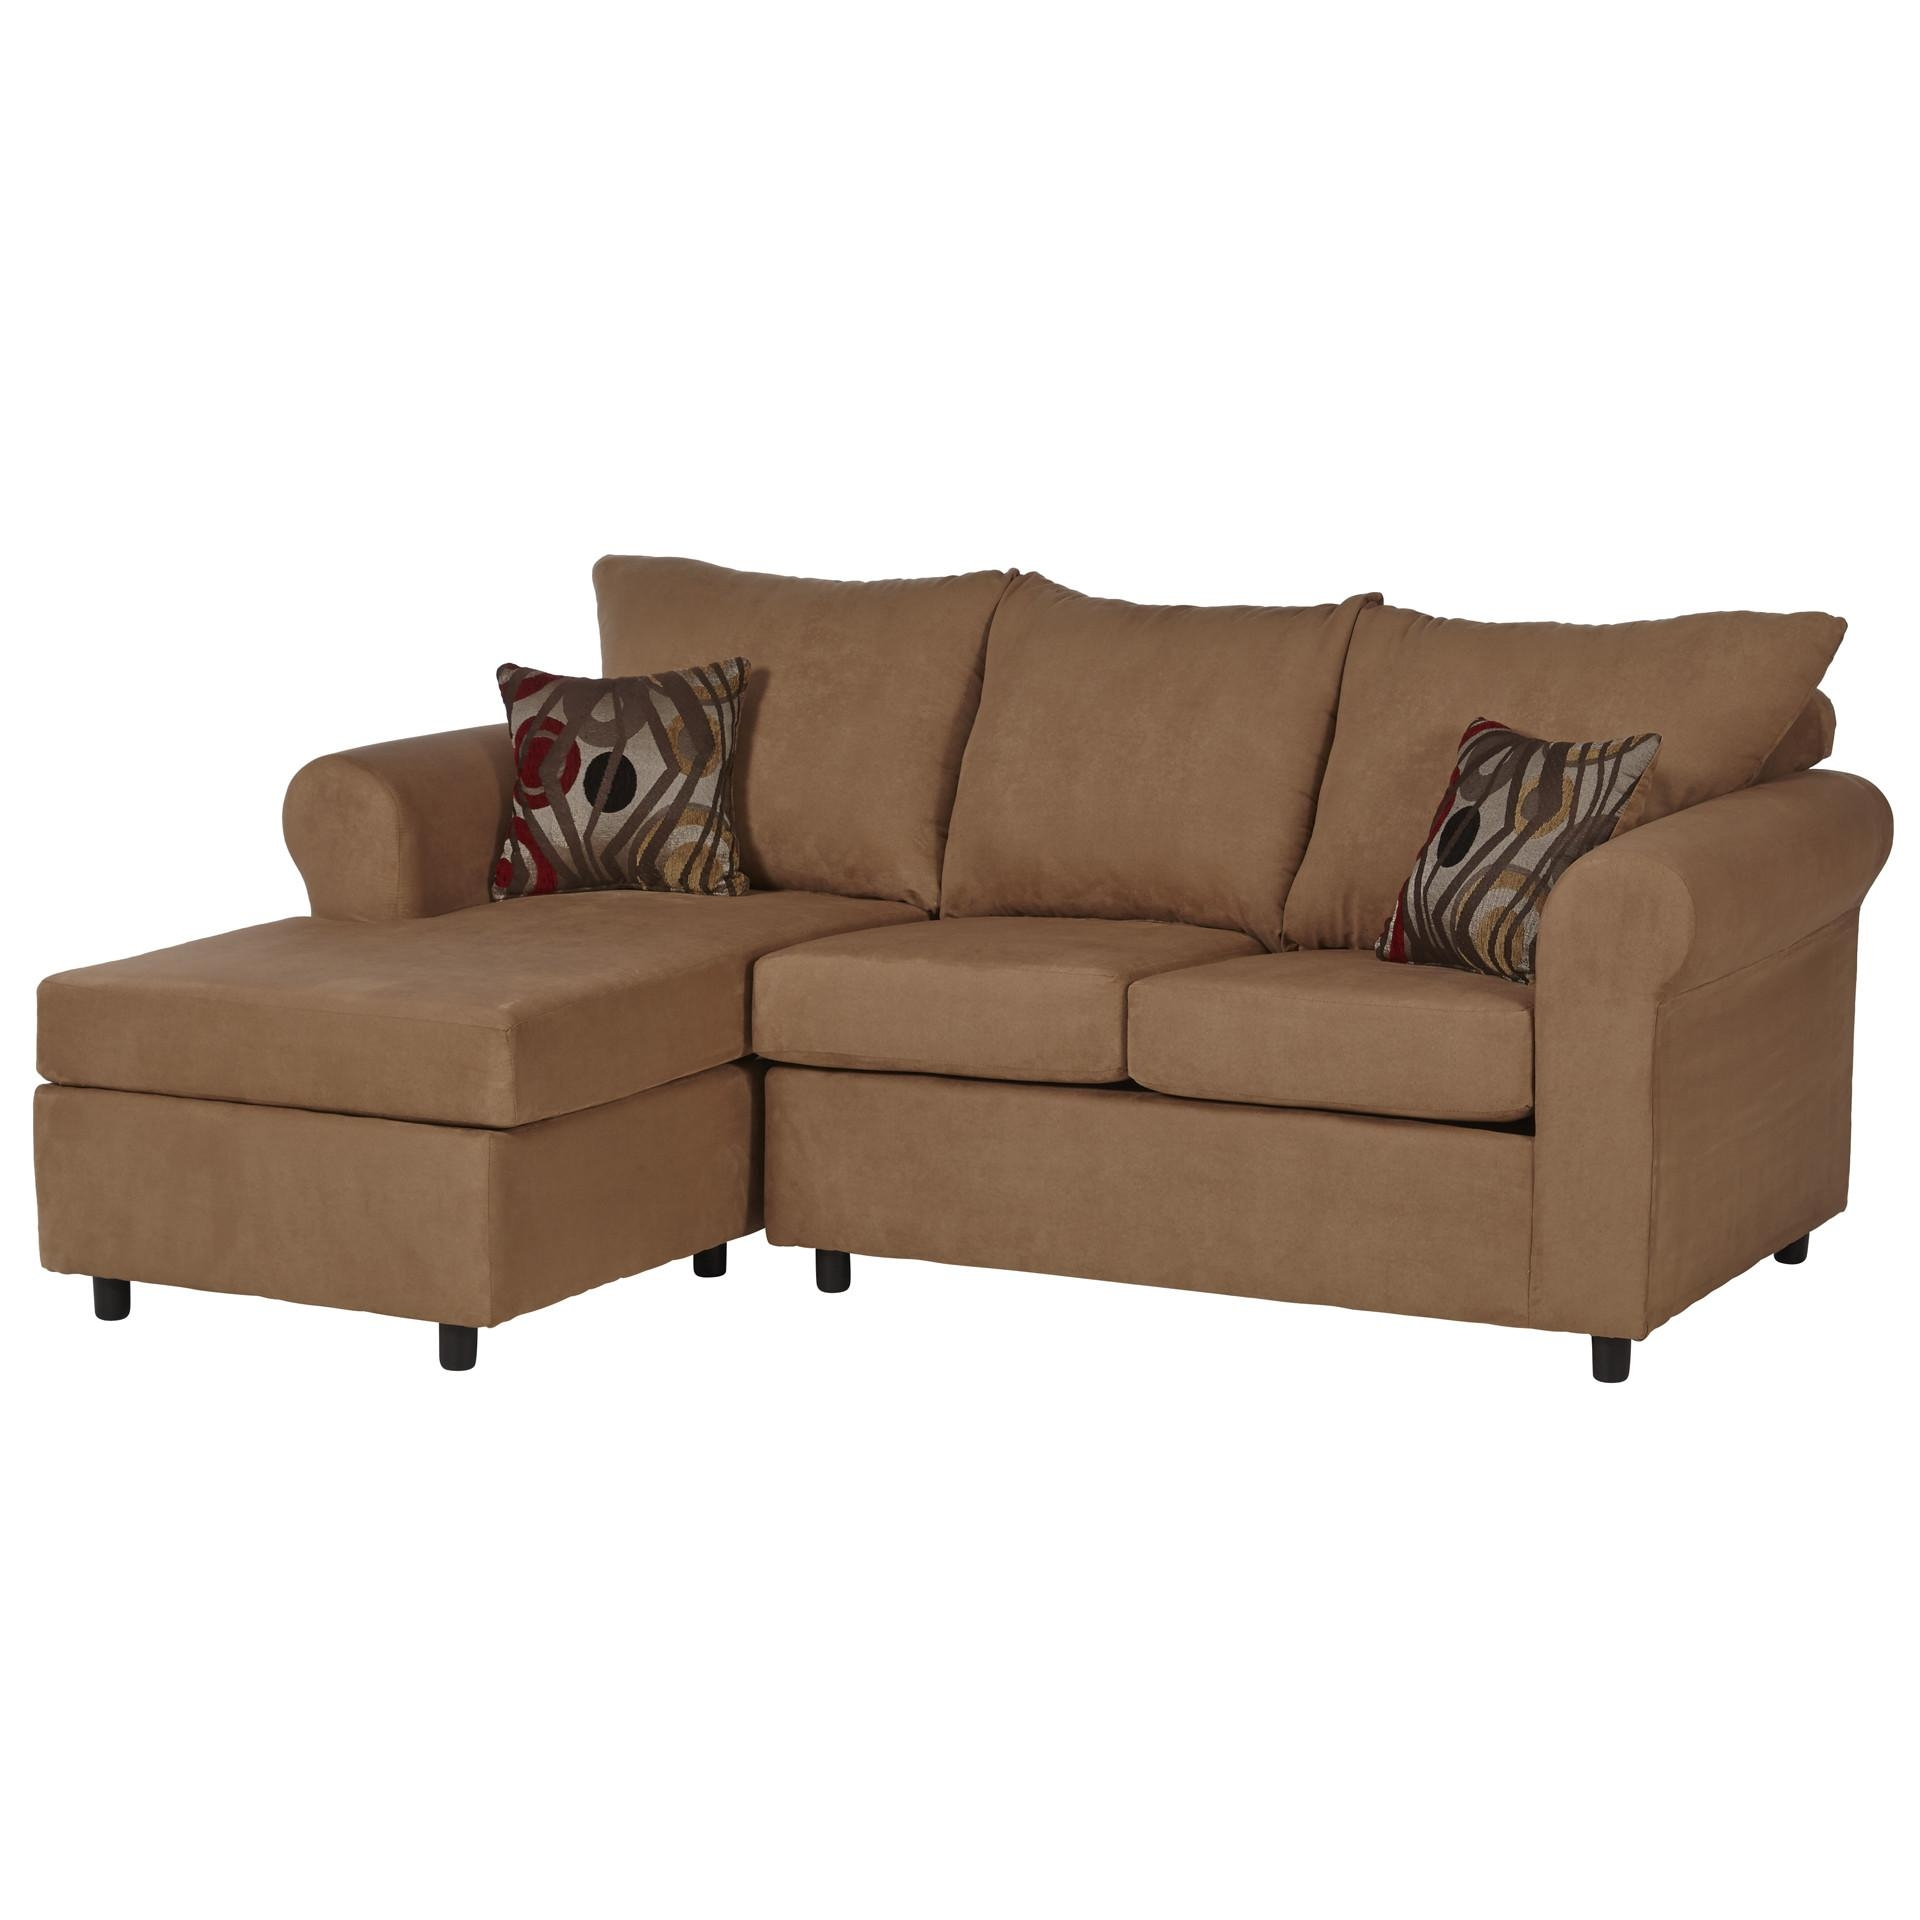 Sectional Sofa Design : Sectional Pit Sofa Small Motif Pillows For Pit Sofas (View 18 of 20)